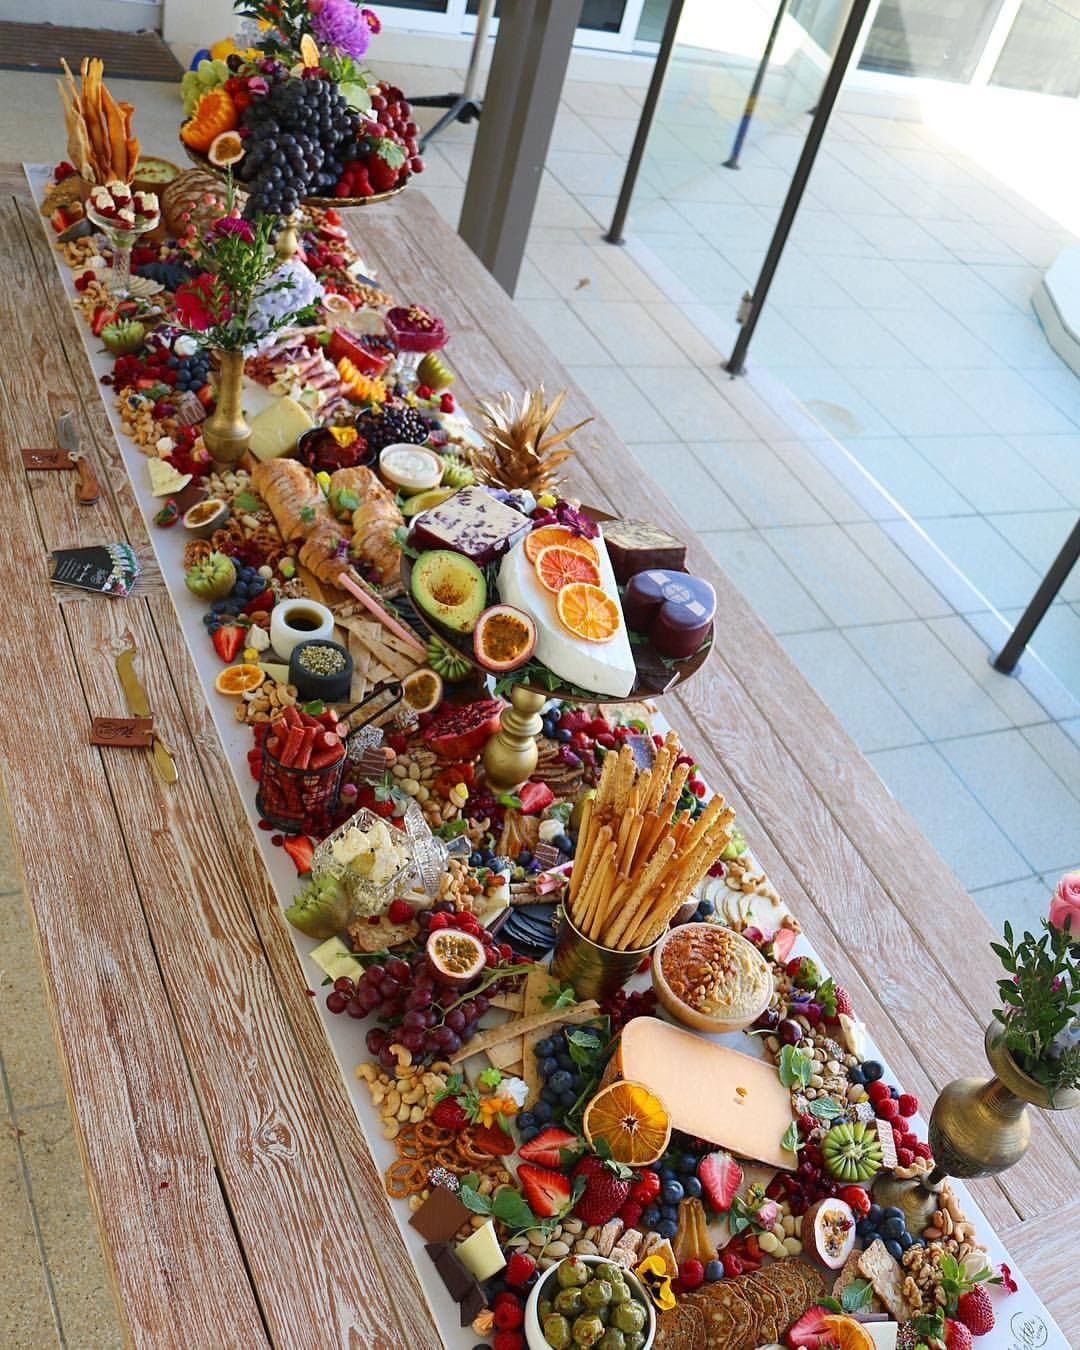 Super Pretty Grazing Table Grazing Table Ideas And Inspiration Setting Up A Grazing Table How To Christmas Christmas Party Food Grazing Tables Food Displays